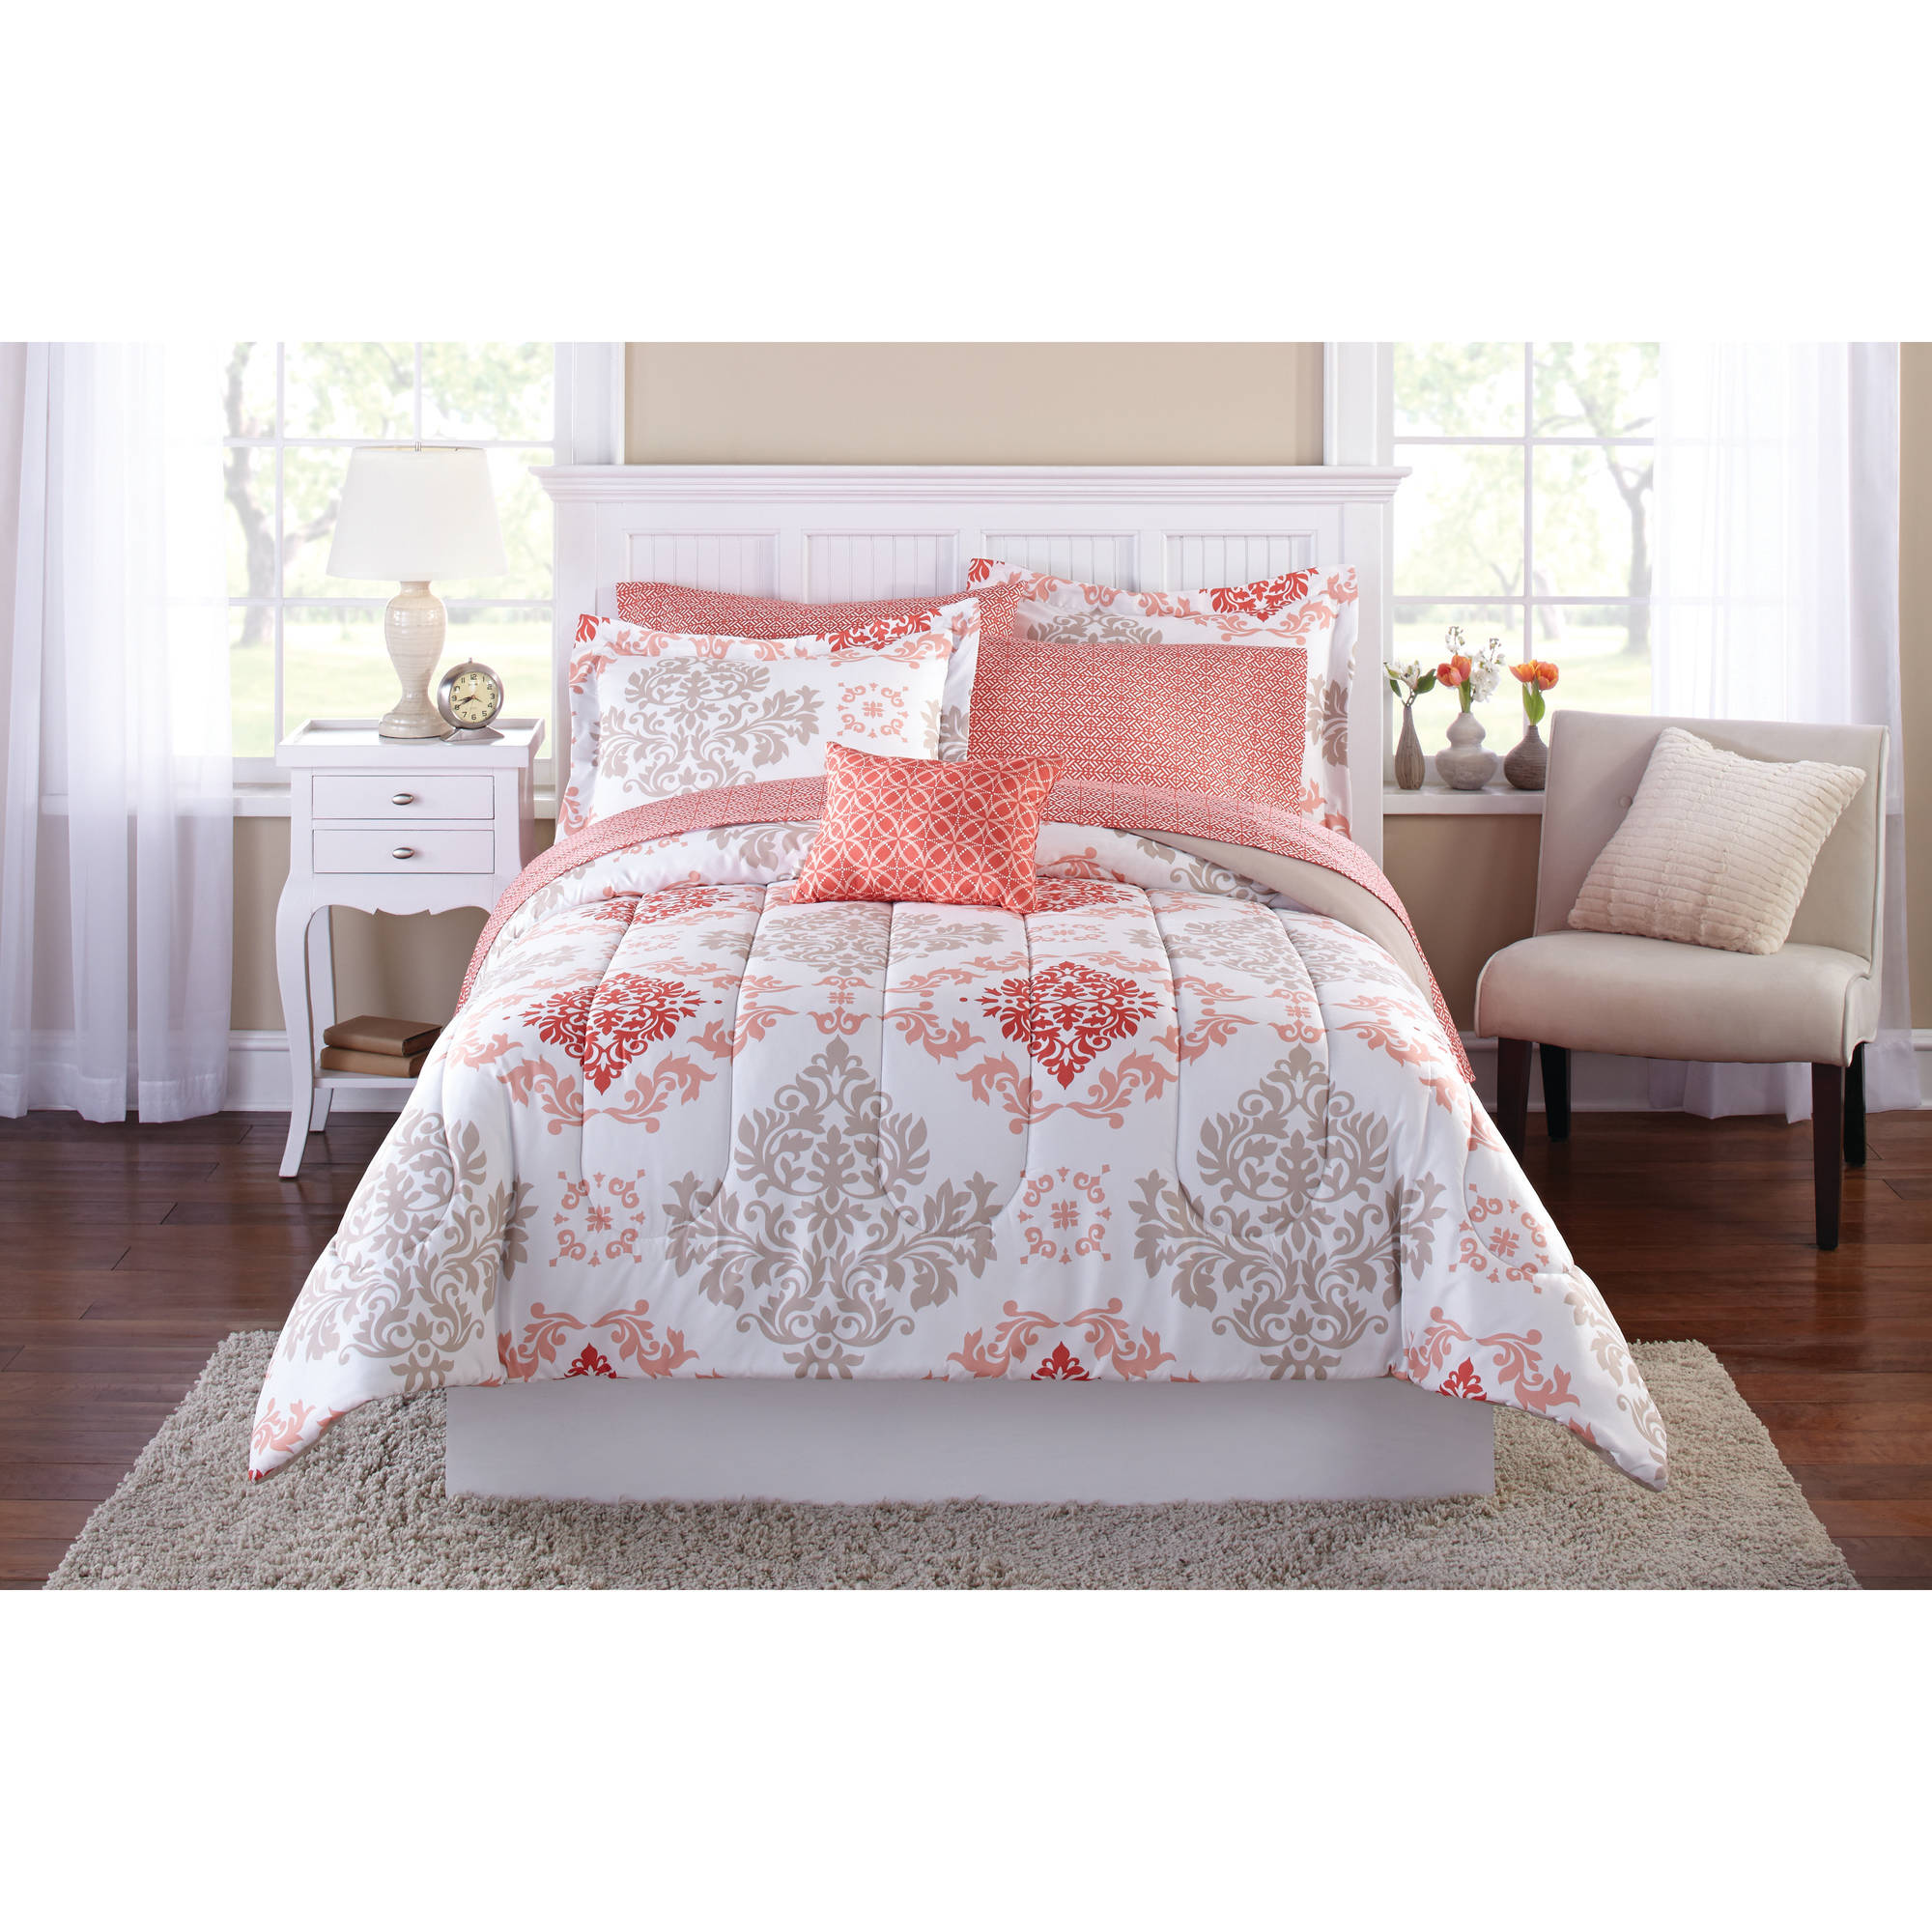 Bed Bath and Beyond Queen Comforter Sets | Queen Bed Set Walmart | Queen Bedding Sets